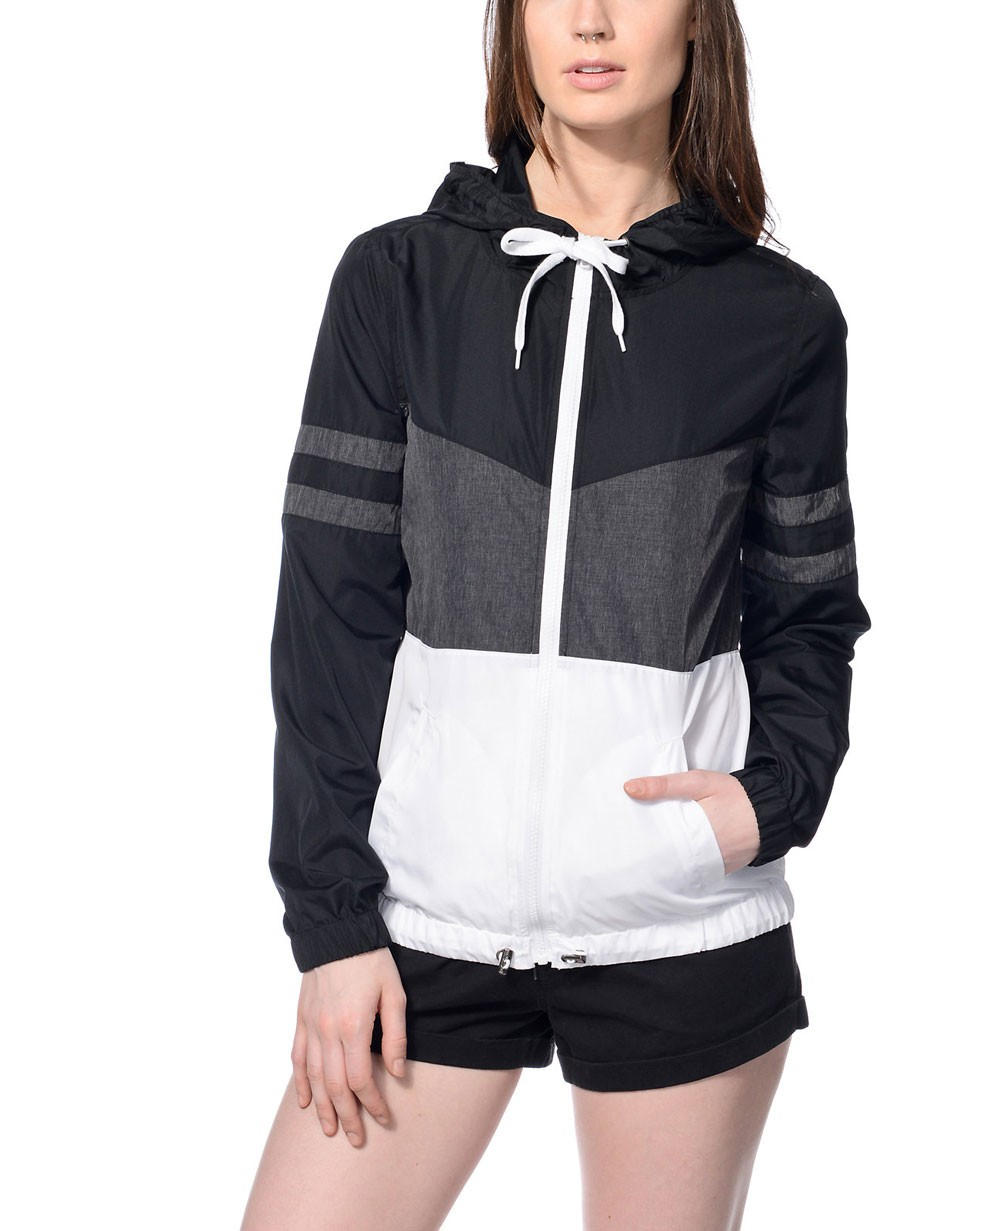 Women Pullover Black Grey & White Color Block Windbreaker Jacket